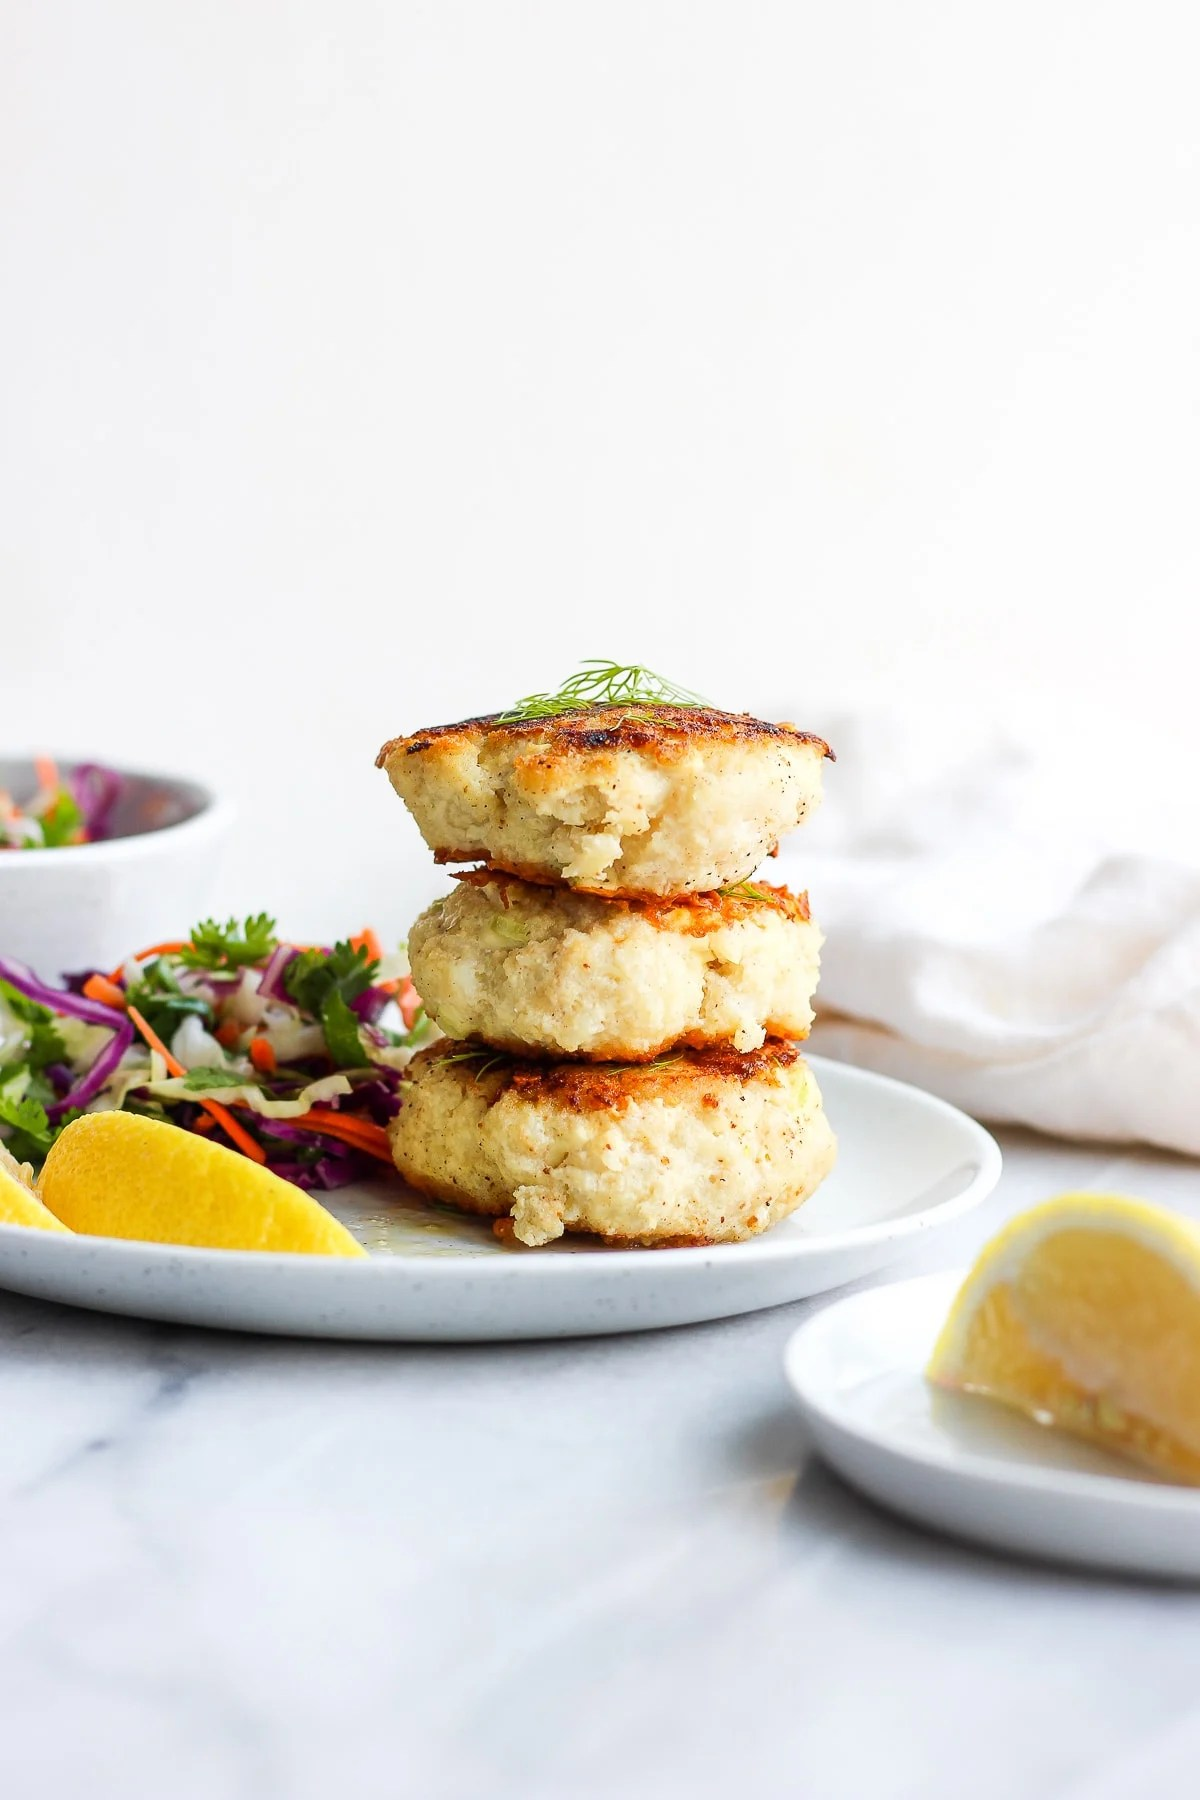 Buttery Pan Seared Cod Cakes - a simple and delicious dinner that is Whole30 compliant! #whole30 #cod #codcakes #paleo #easyweeknight